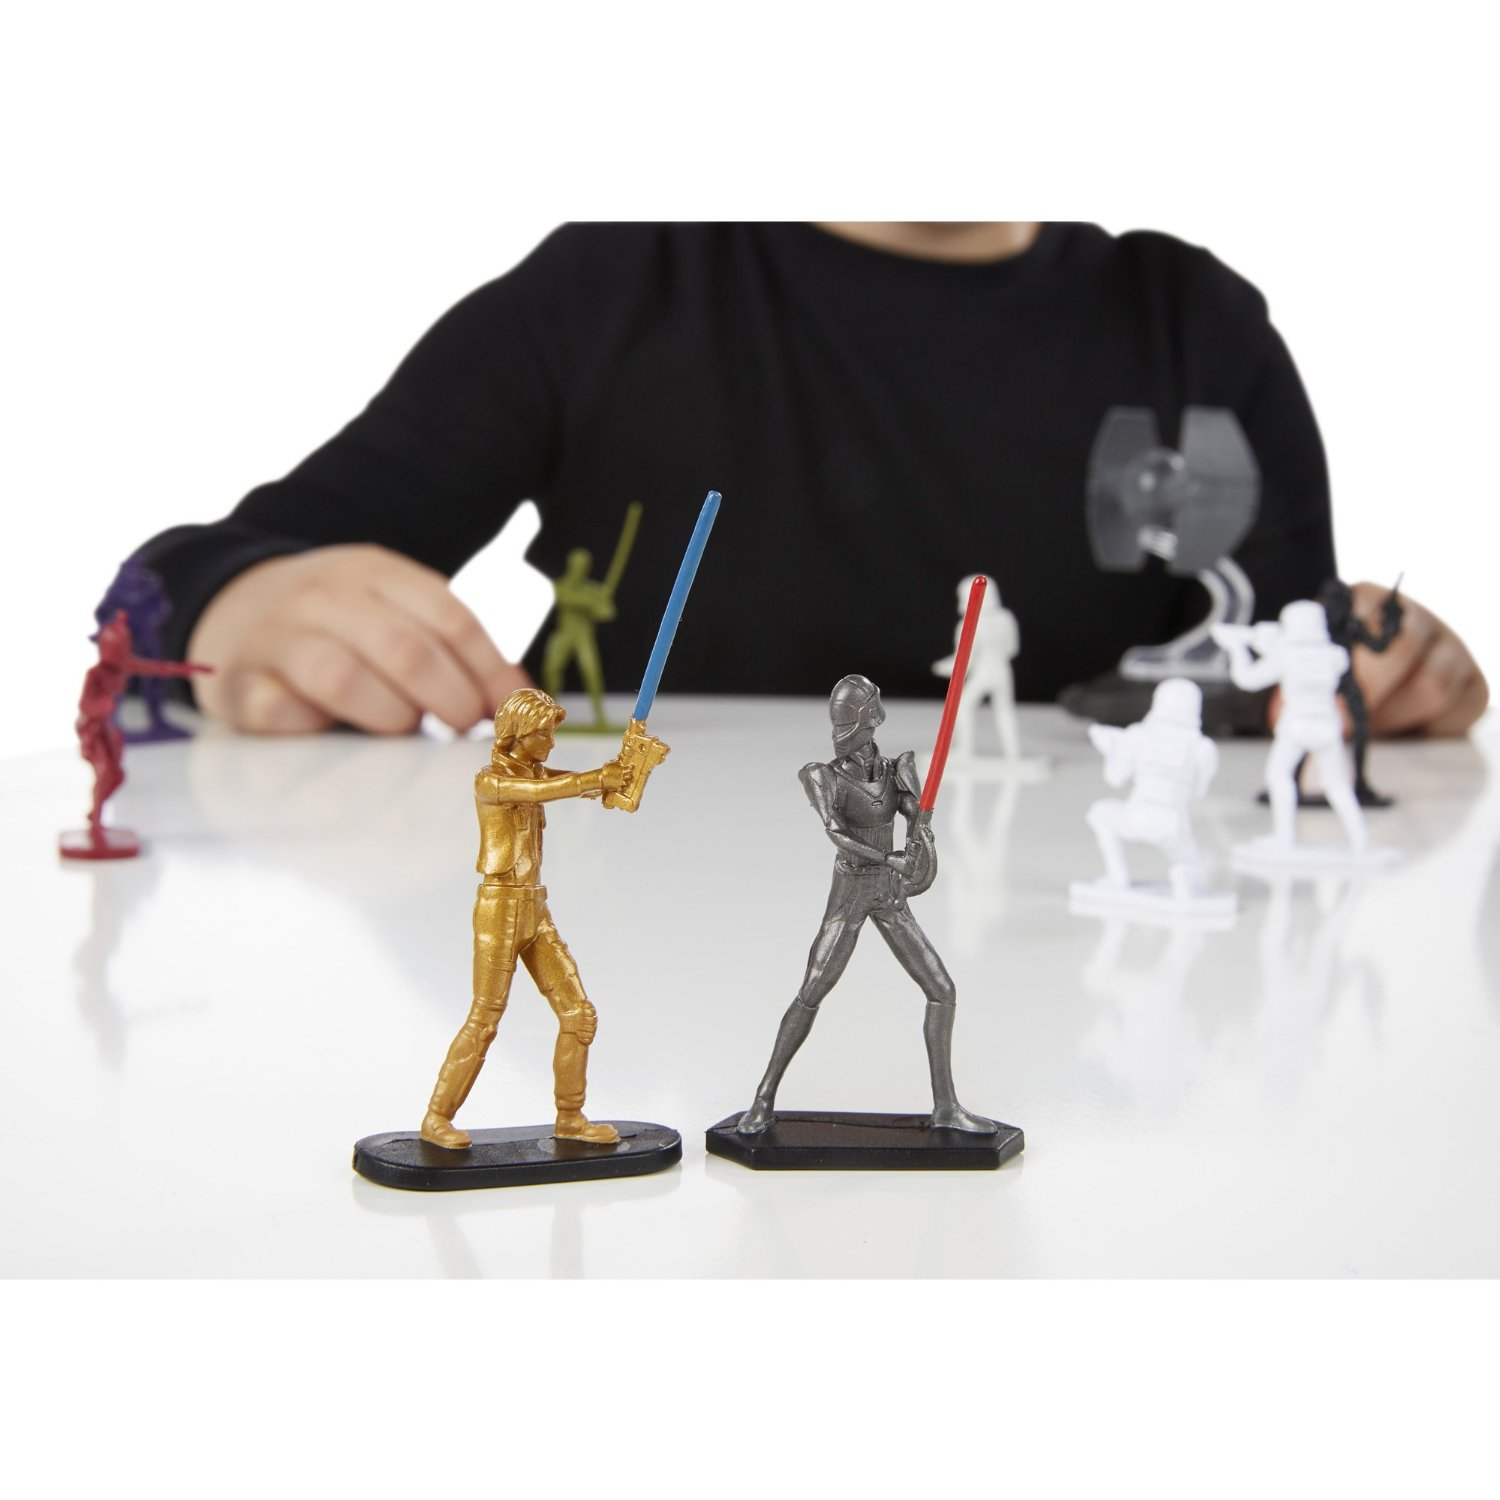 Star Wars Command Epic Assault Set Only $6.92 (Reg. $21.99) At Amazon!